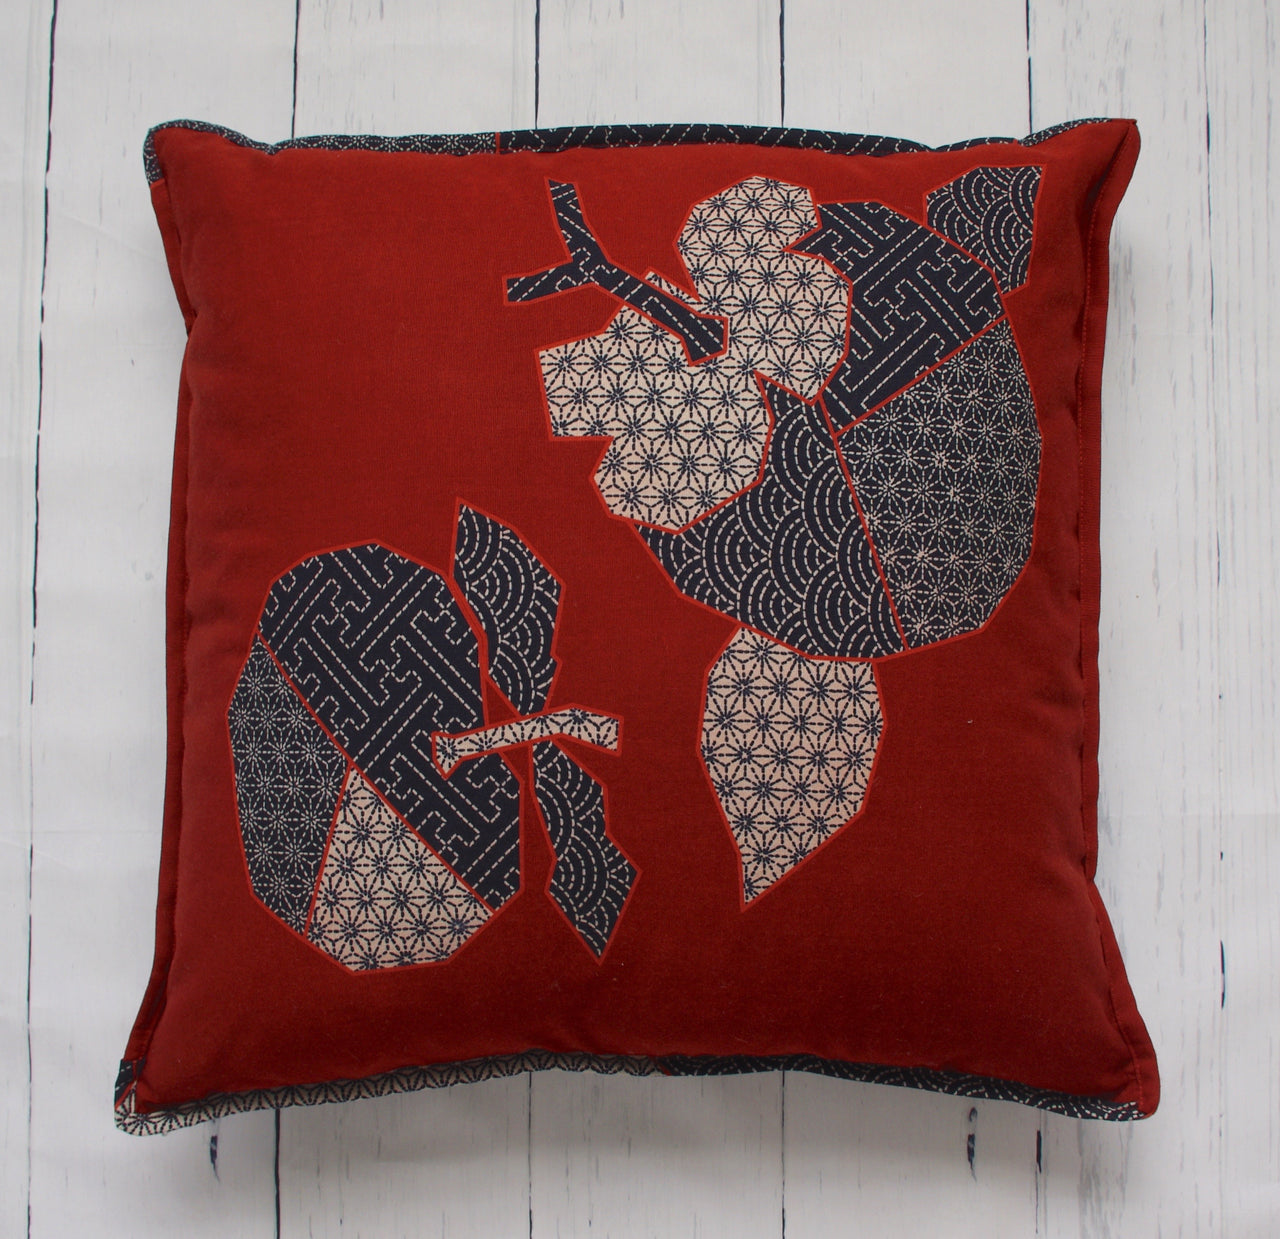 japanese-apples-hilary-hope-floor-pillow-front